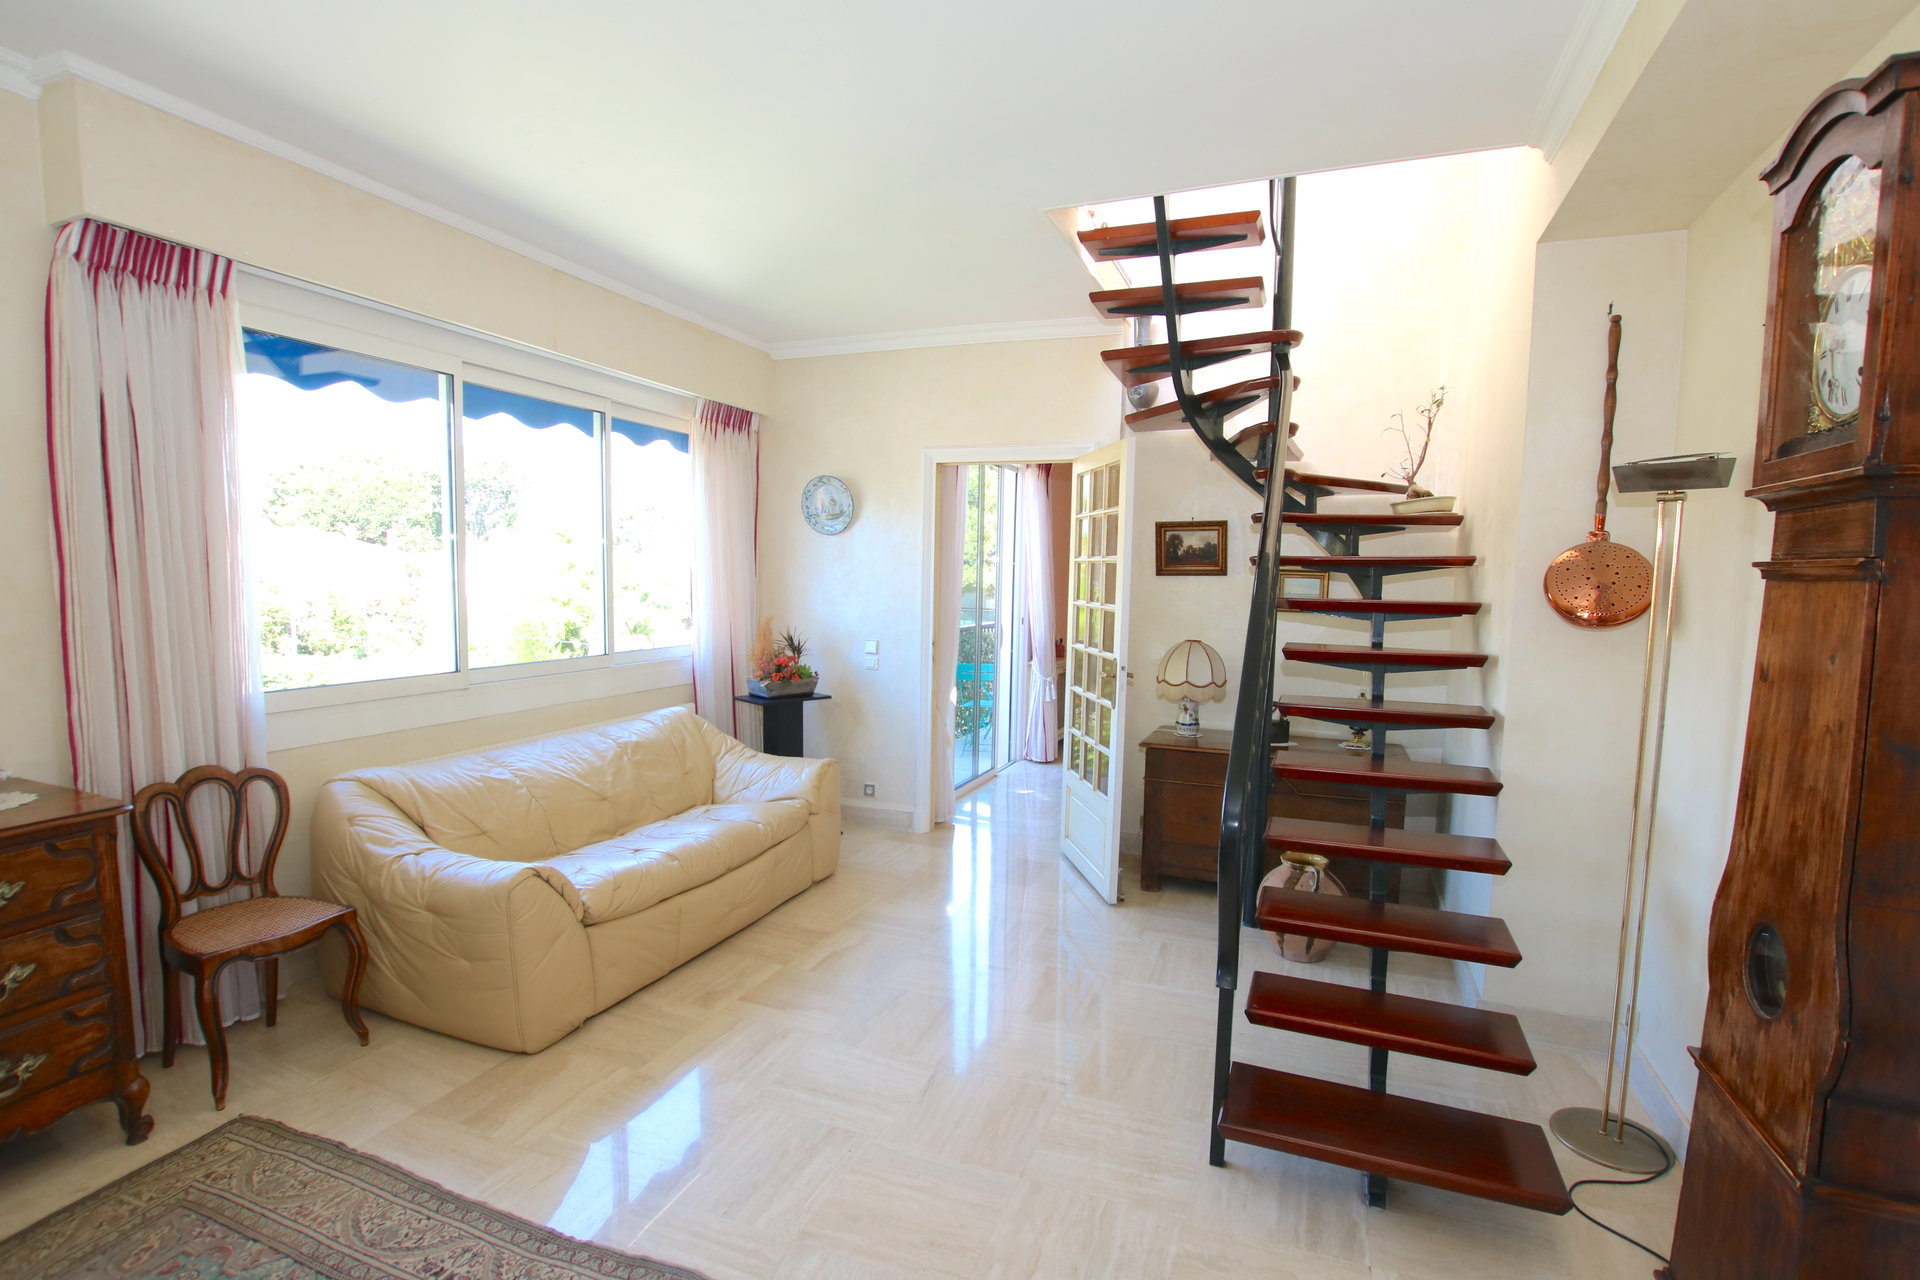 TO SALE MONTFLEURY TOP FLOOR 4P 143M² + TER 180M²